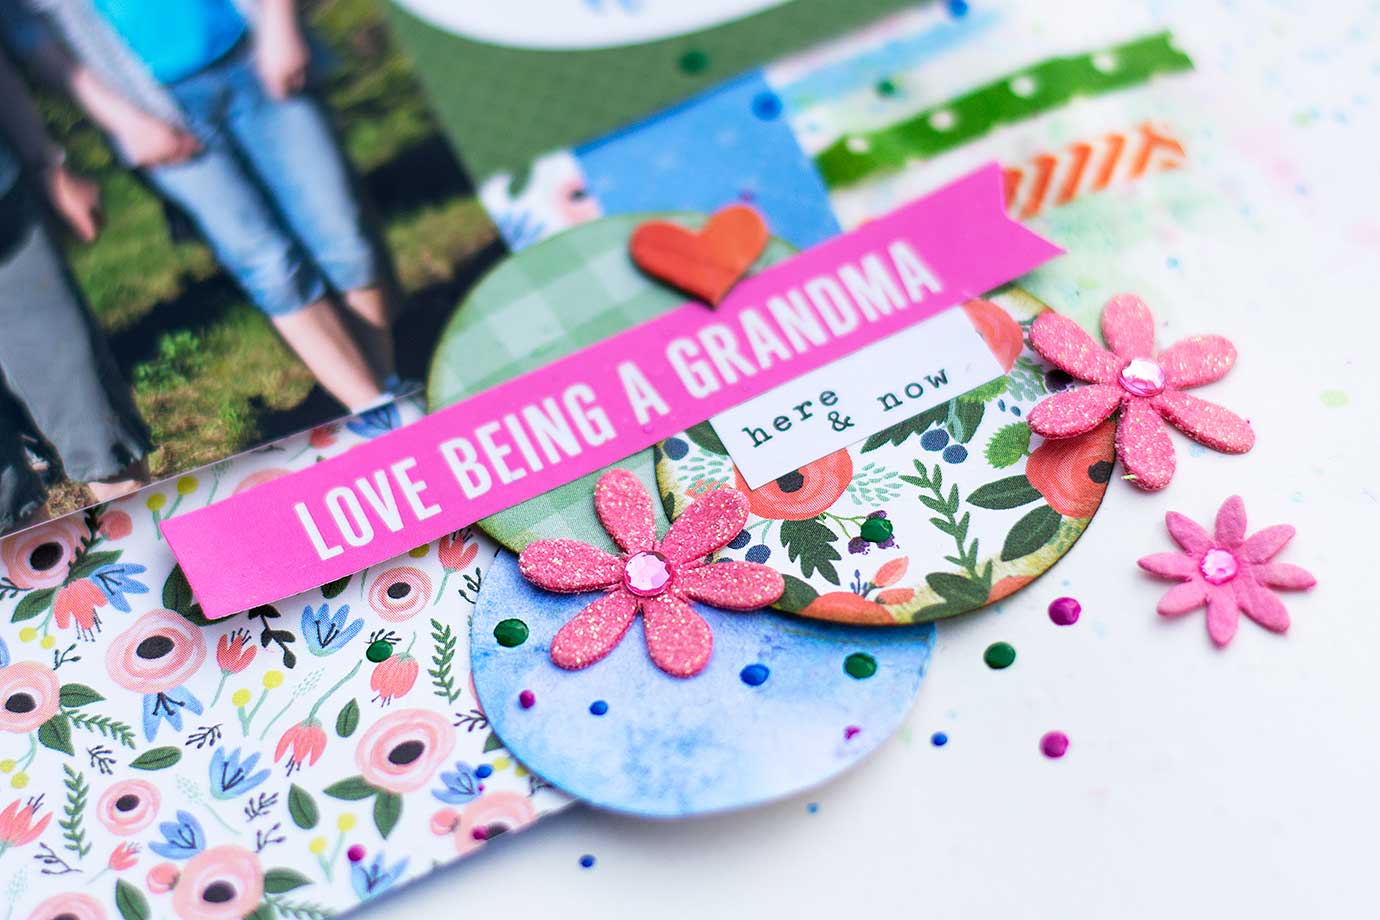 Preserve memories with scrapbooking